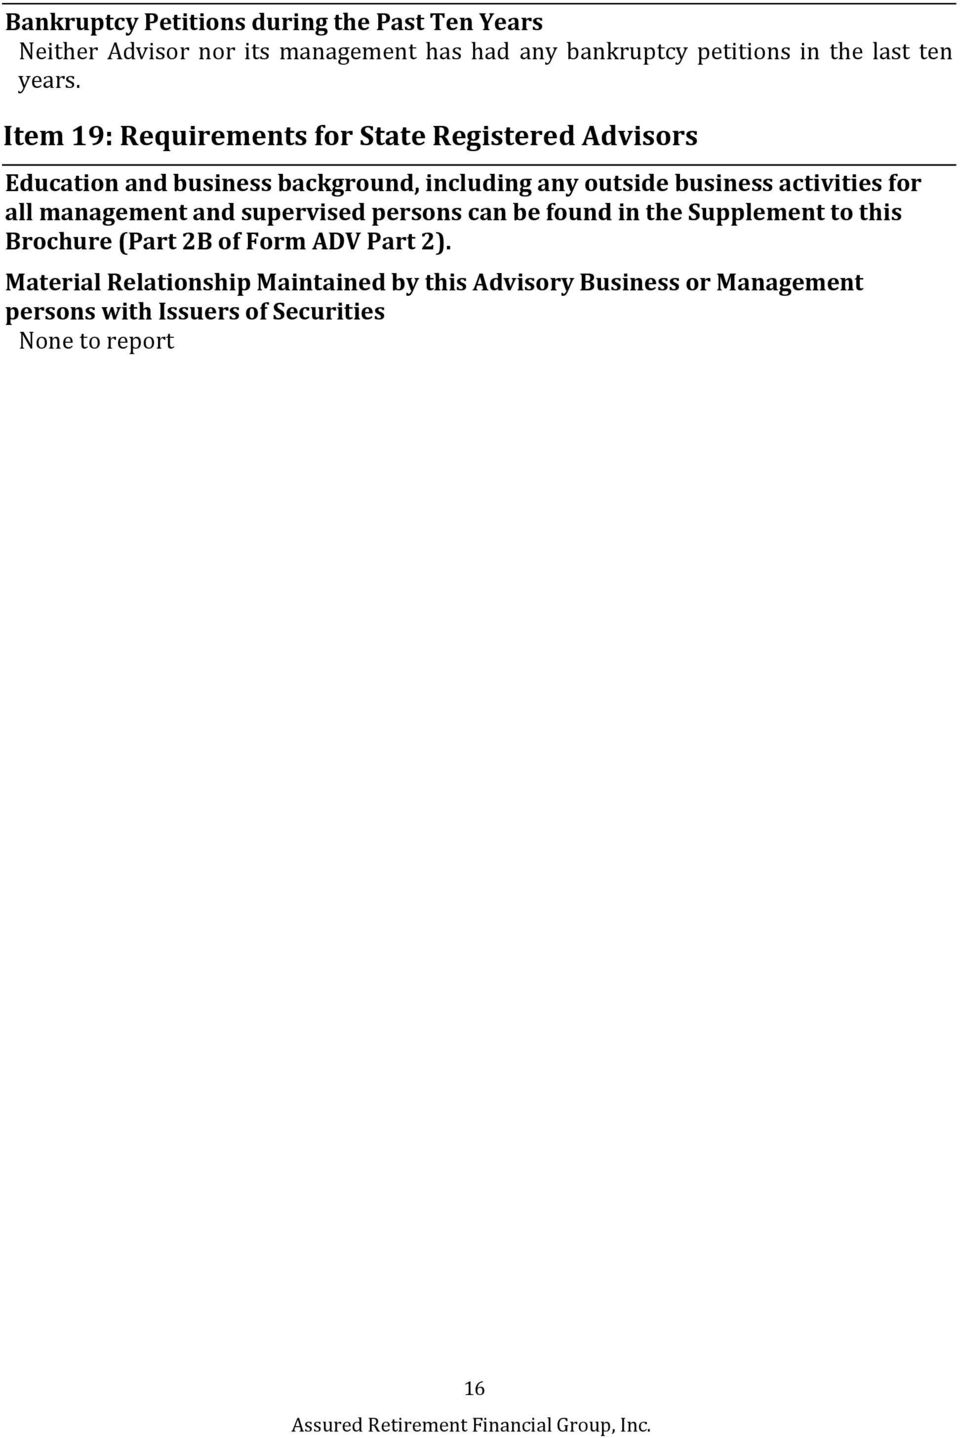 Item 19: Requirements for State Registered Advisors Education and business background, including any outside business